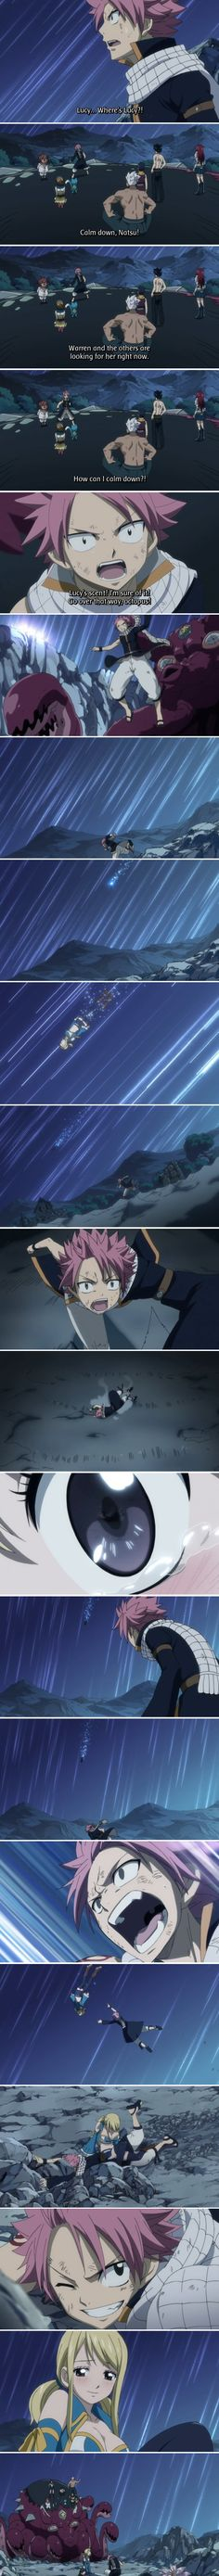 NaLu Episode 150 by DSM164.deviantart.com on @deviantART ~ their bond is too adorable, this is what love is ^^